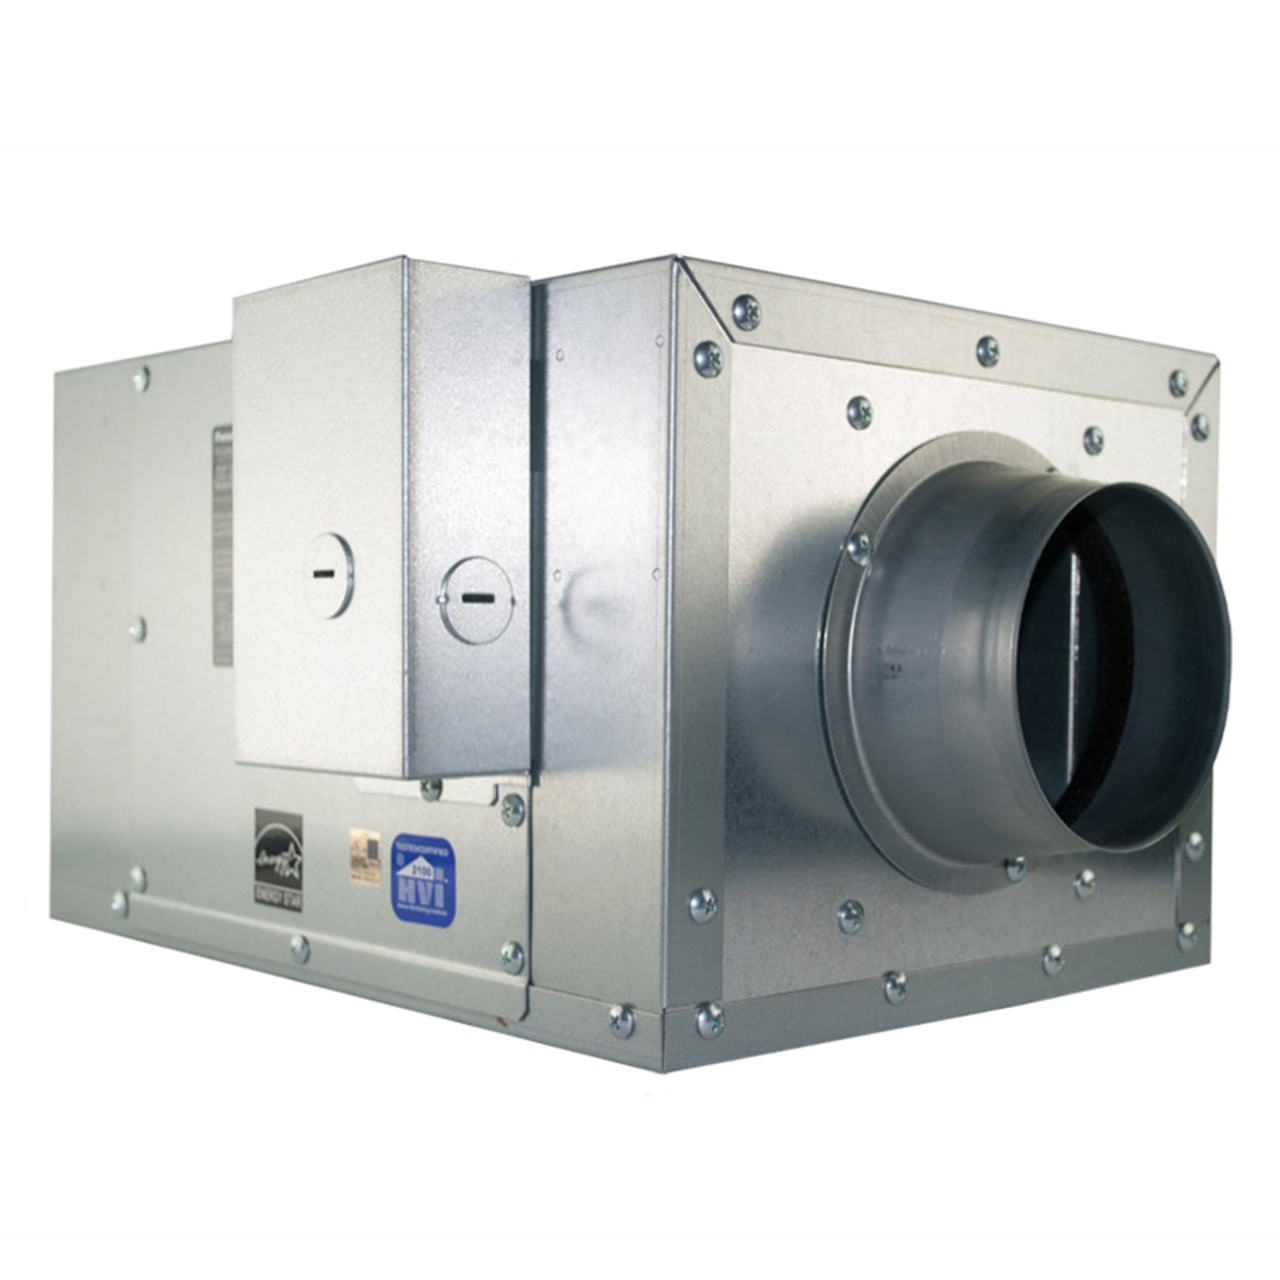 Quiet Crawl Space Ventilation Fan Great For Bathrooms Too